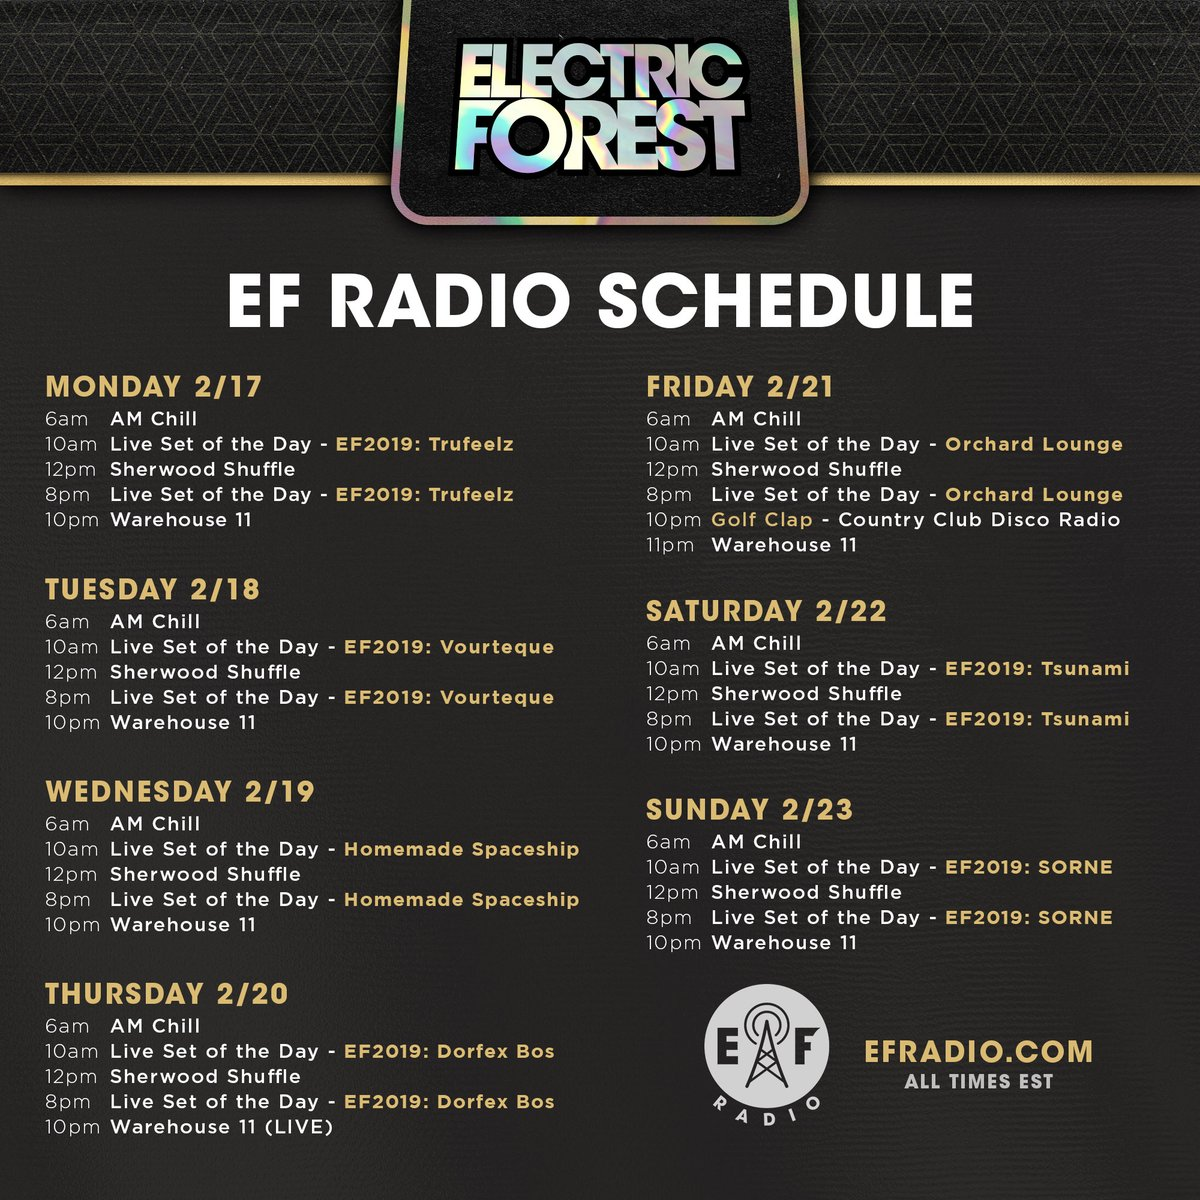 This week on @EForestRadio!   Tune in and hear #EF2019 Sets from @OrchardLounge, @Vourteque, @DorfexBos and others, plus daily broadcasts of the Sherwood Shuffle and more...   Hear it 24/7/365 at http://EFRadio.com !pic.twitter.com/ELiHaNHvZ2